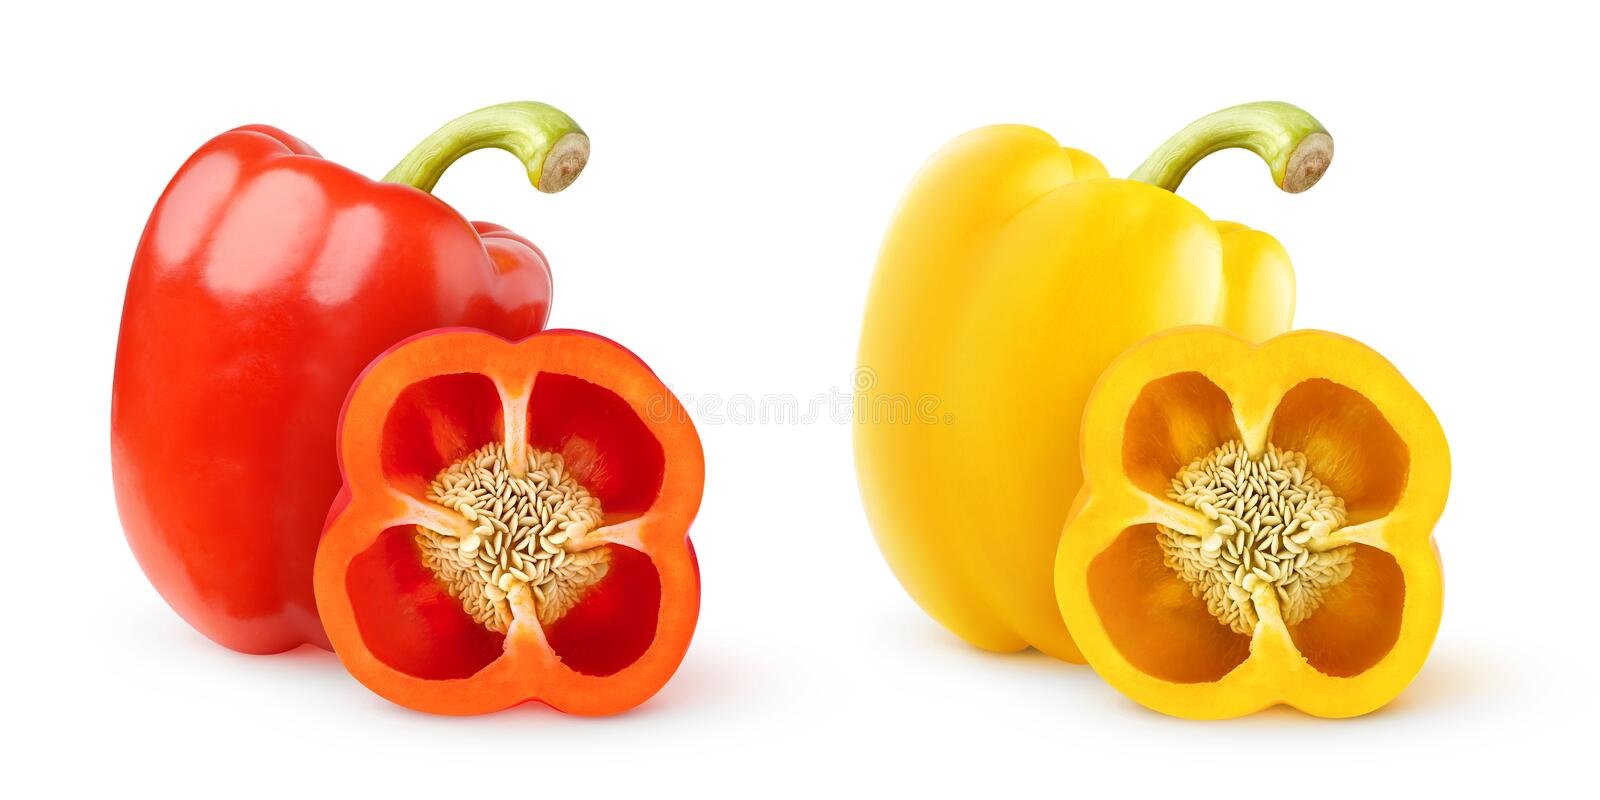 Download Bell peppers stock image. Image of isolated, capsicum - 33279445